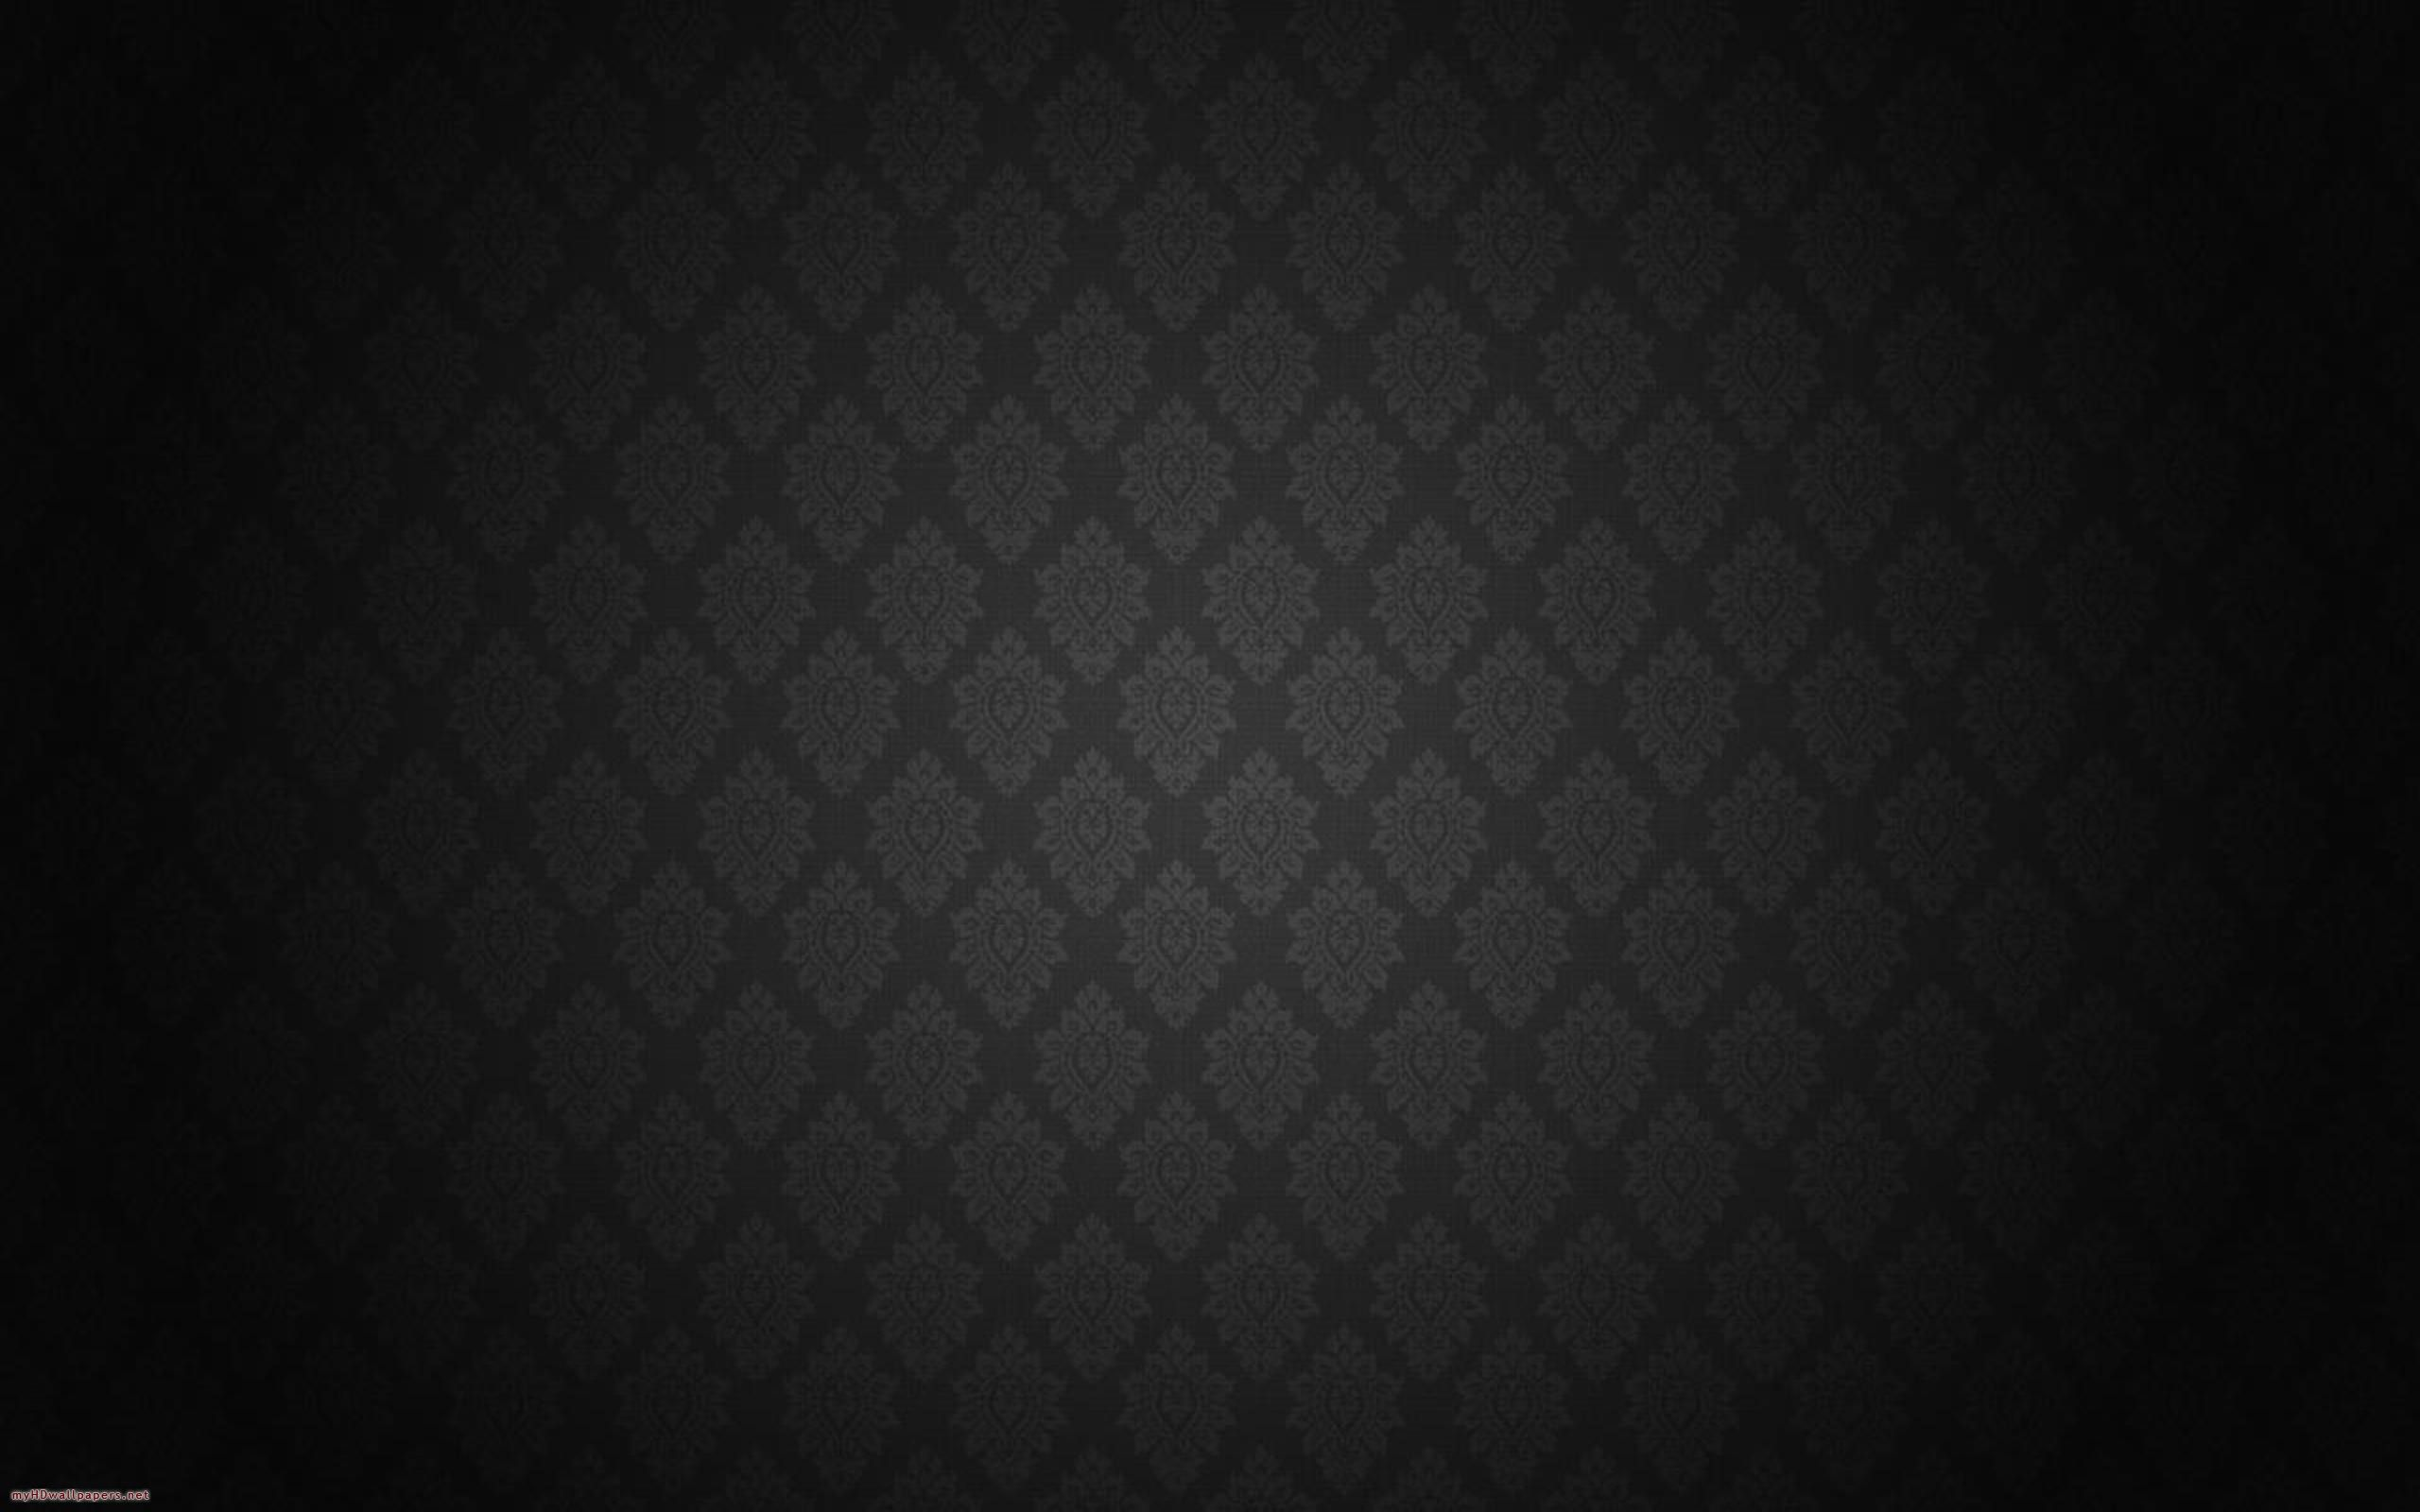 Black And White Wallpaper 2711 2560x1600 Px Hdwallsource Com Background Hd Wallpaper Black Wallpaper Black And White Wallpaper